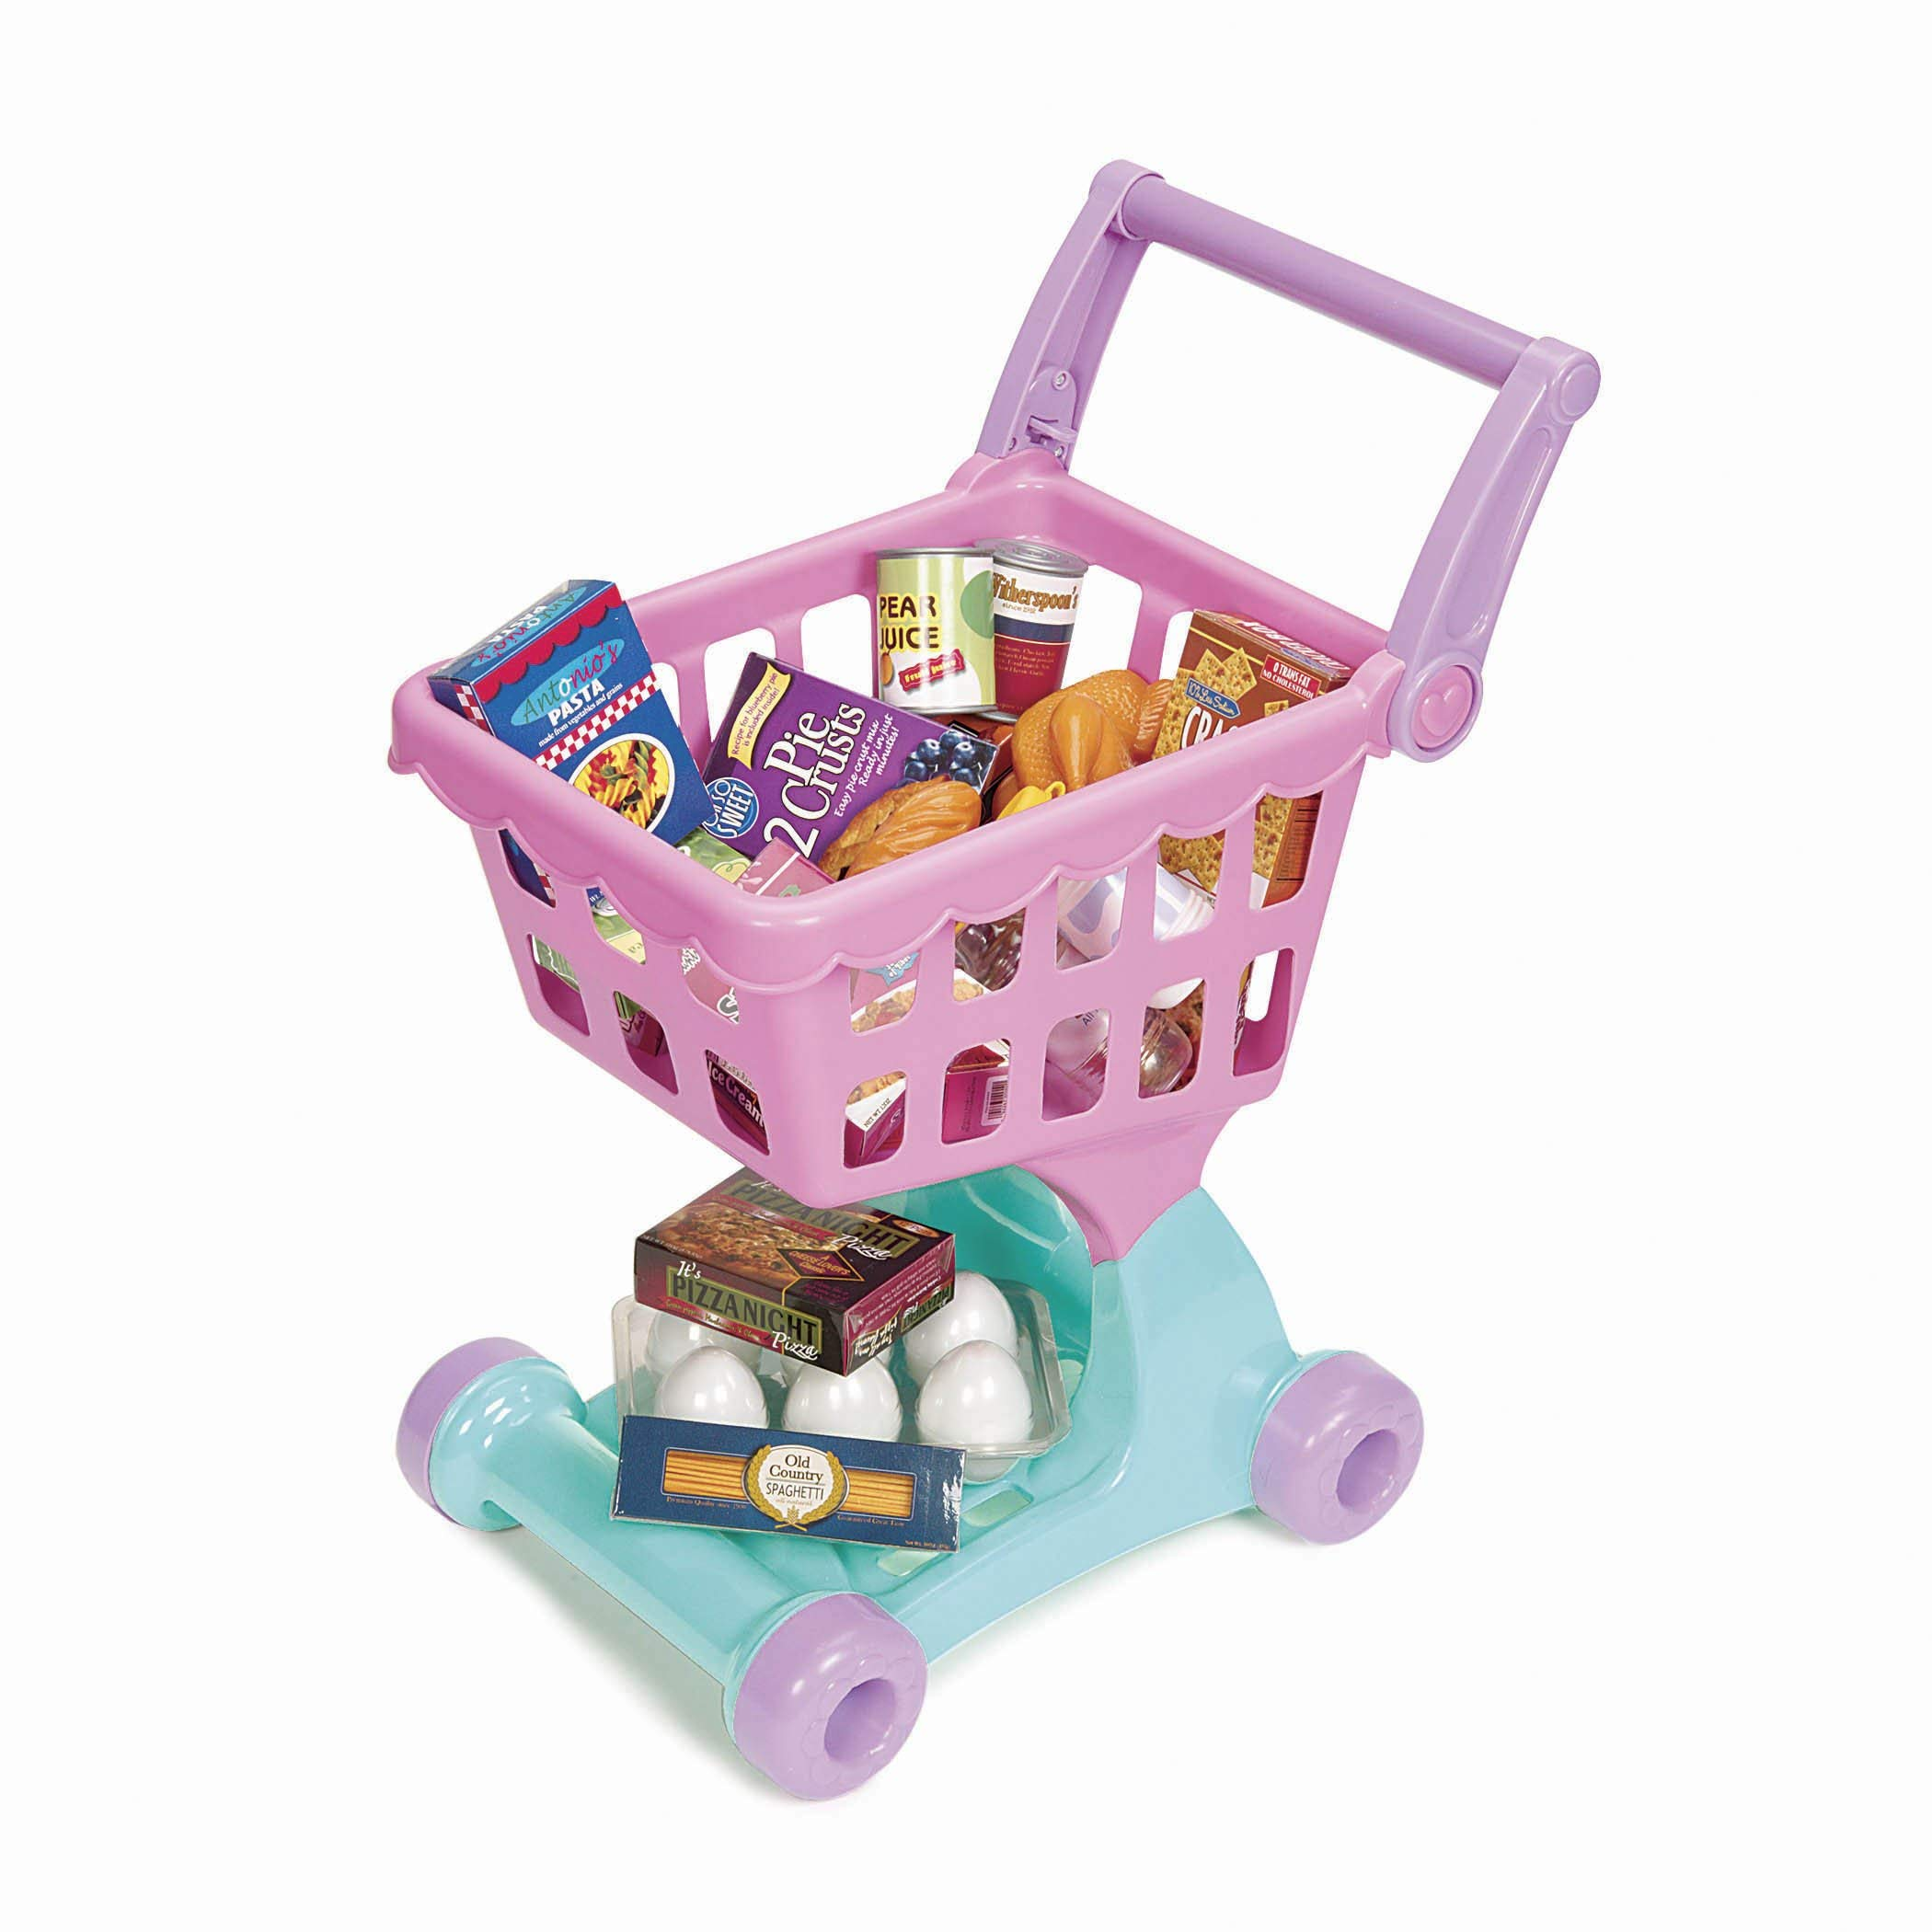 Play Circle by Battat - Shopping Day Grocery Cart - 30-piece Toy Shopping Cart and Pretend Food Playset - Grocery, Kitchen and Food Toys for Toddlers Age 3 Years and Up (Renewed)